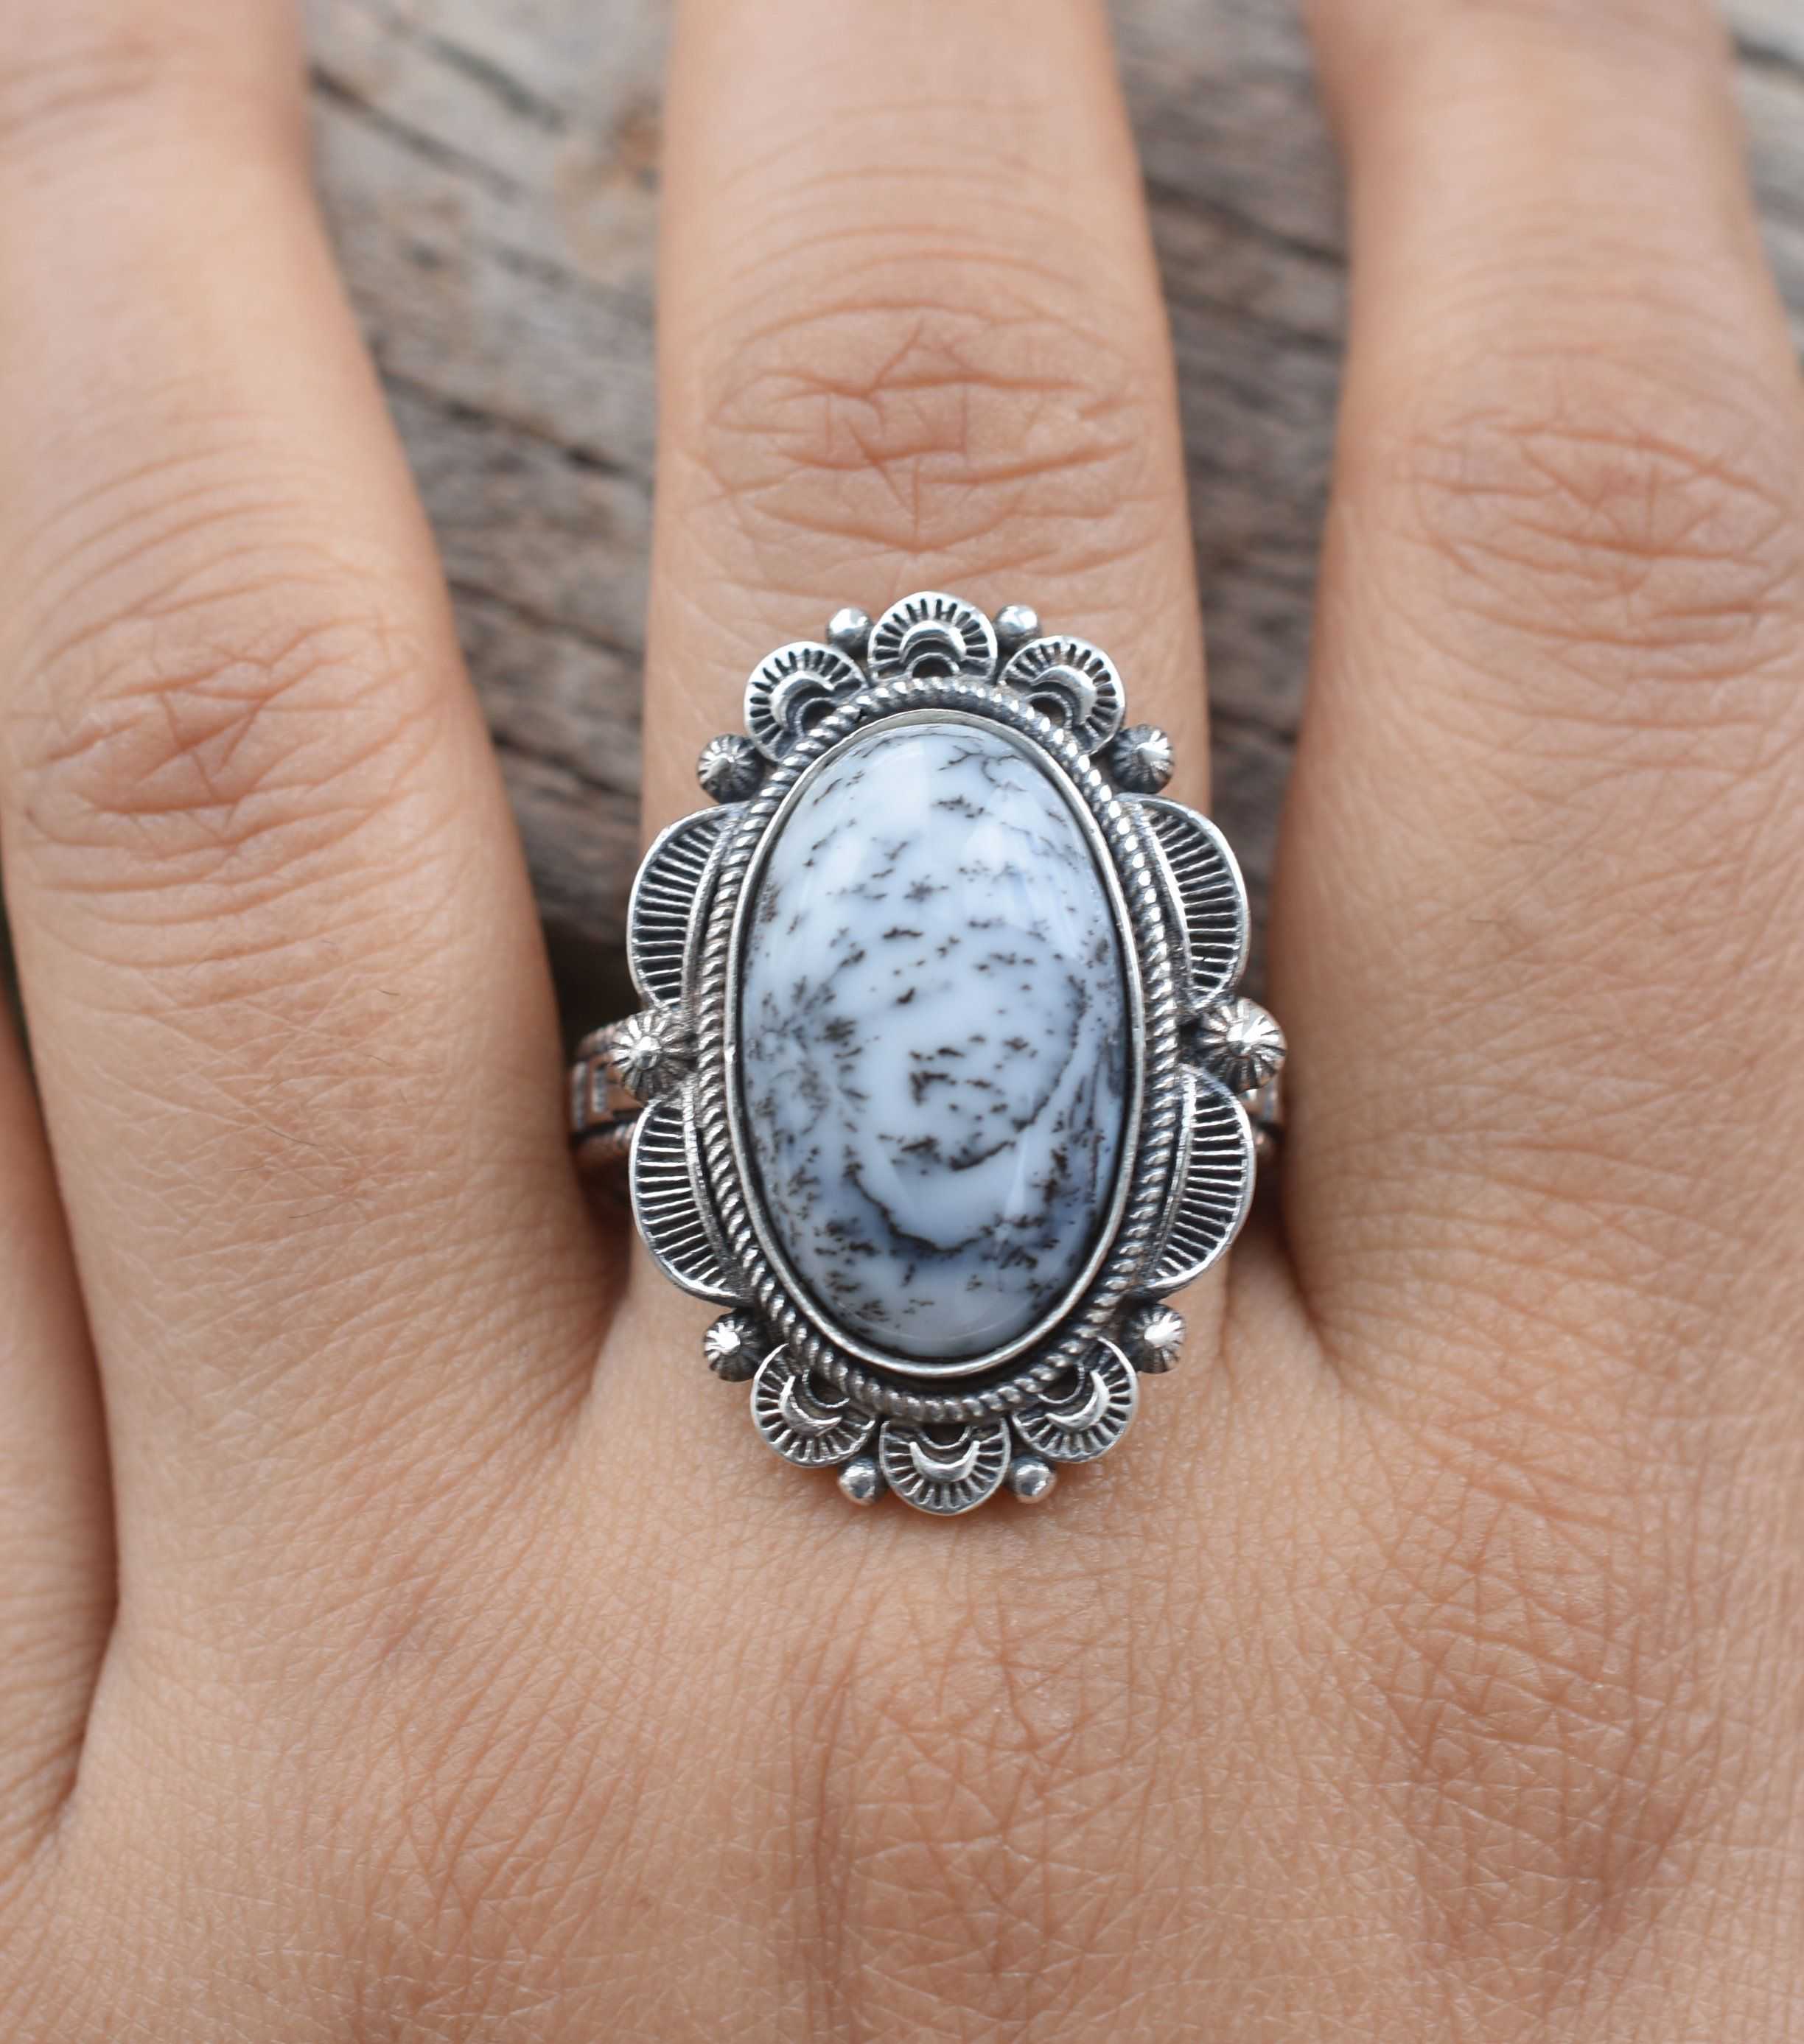 Christmas Silver Gift 925 Sterling Silver Ring,Dendritic Opal Silver Jewelry,Designer Handmade Ring Dendritic Opal Ring Handmade Ring